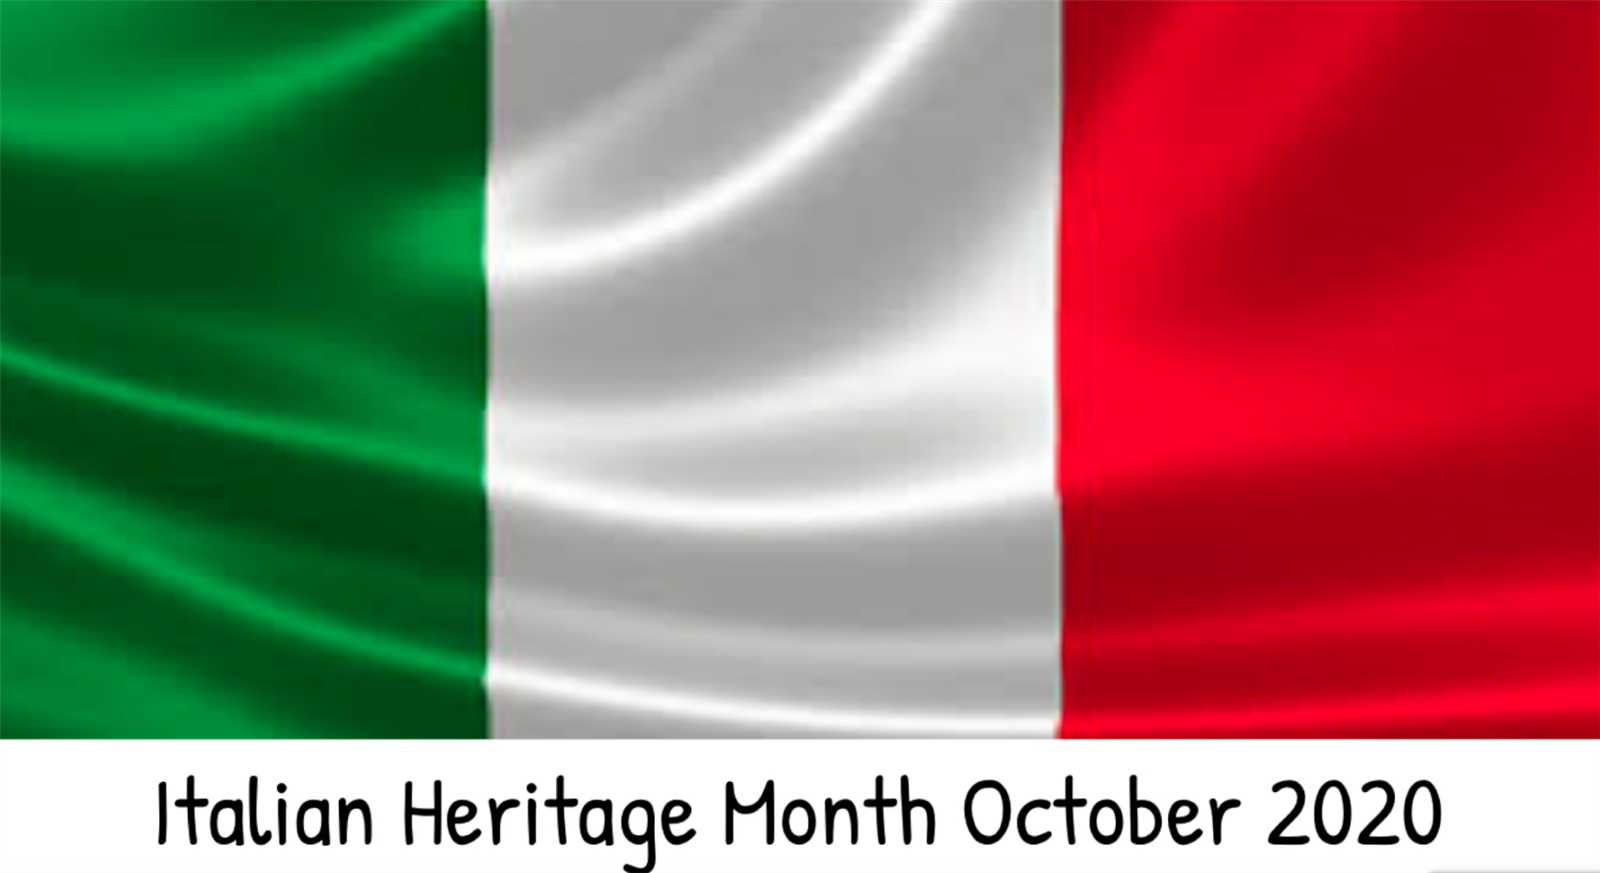 Italian Heritage Month at John Glenn High School